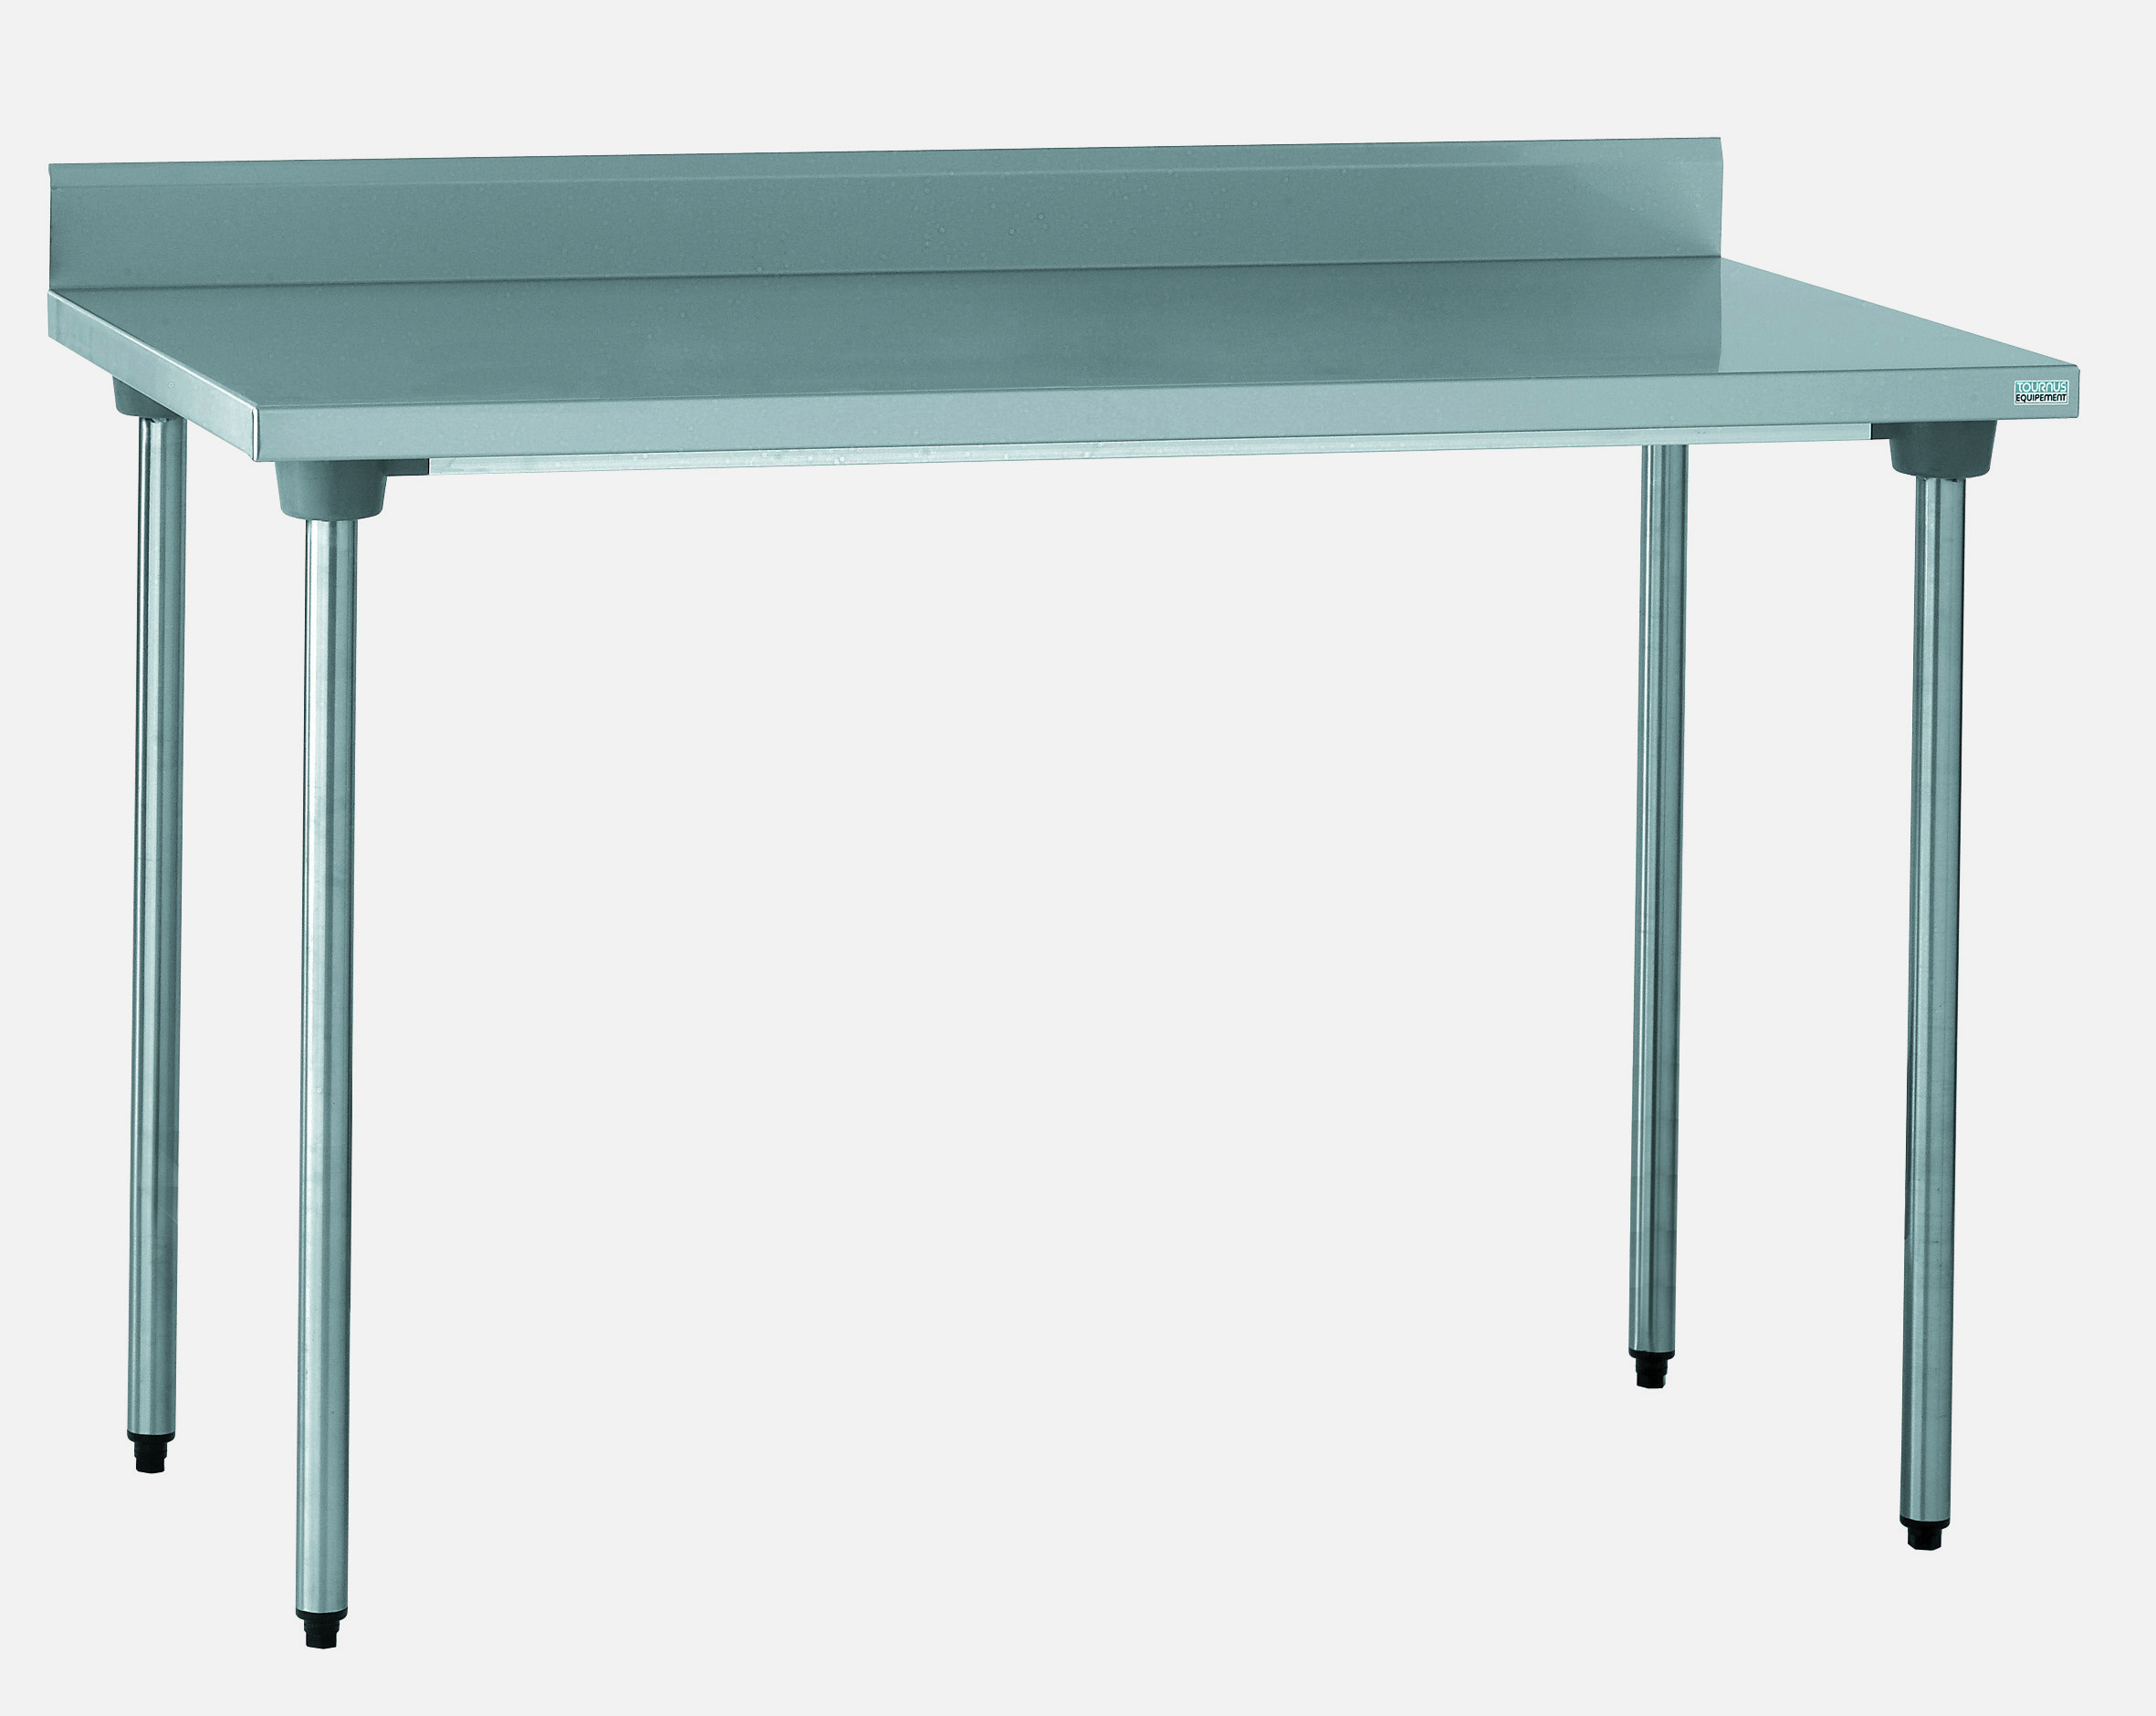 TABLE CHR ADOSSEE 700X1200